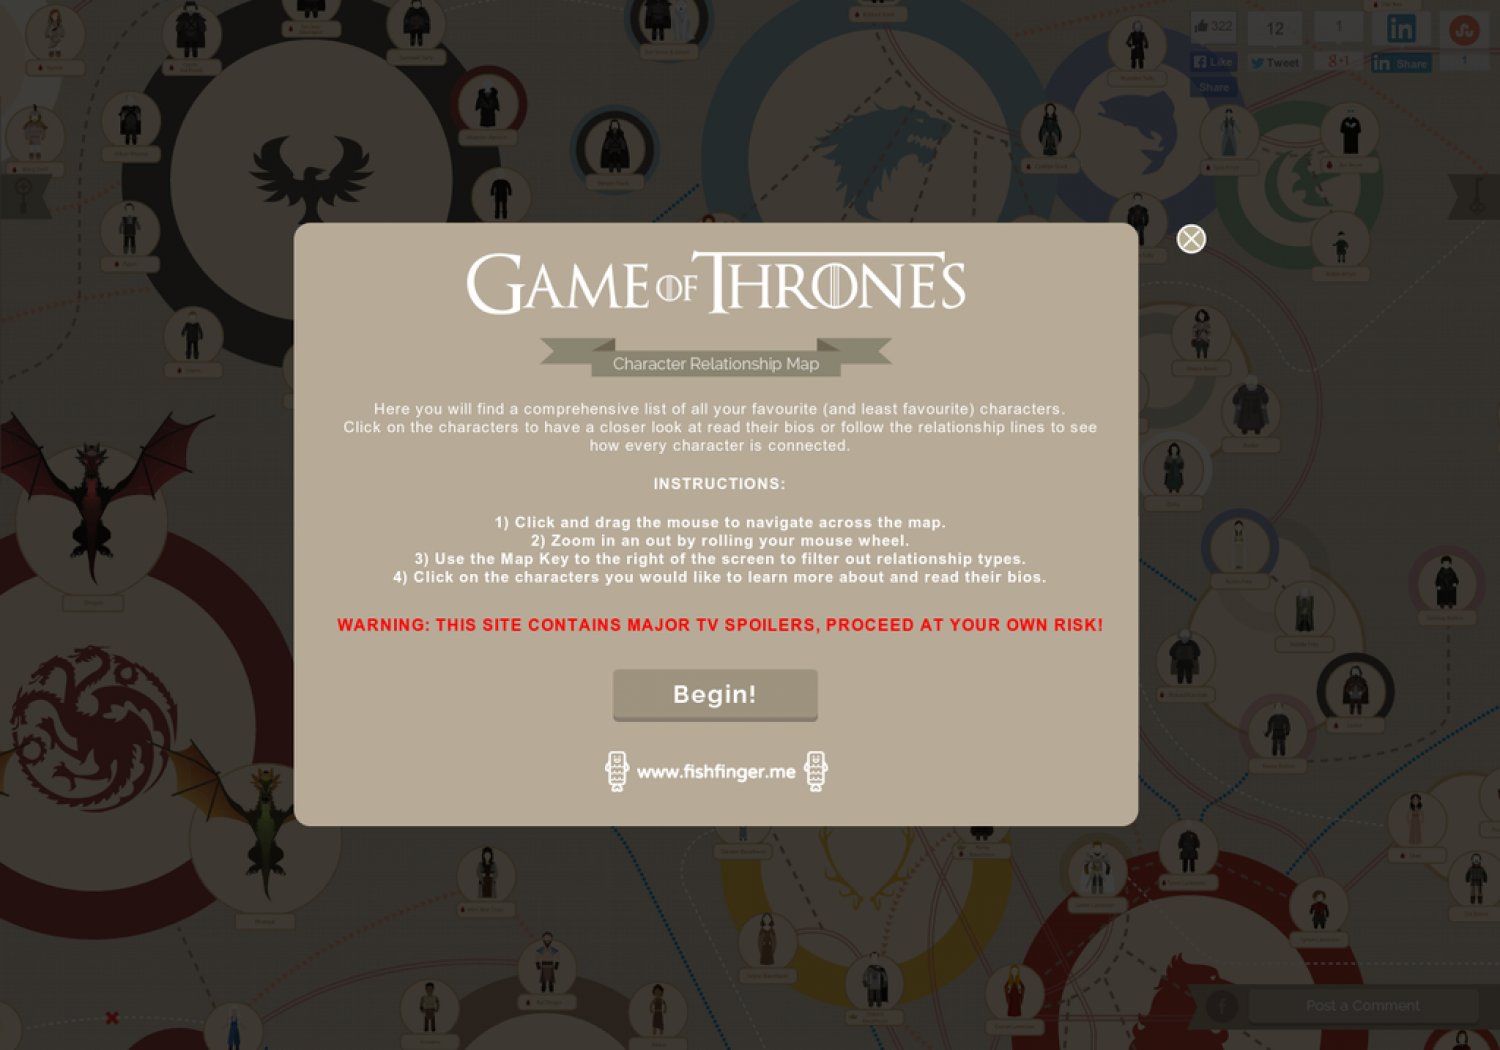 Game of Thrones Character Relationship Map Infographic